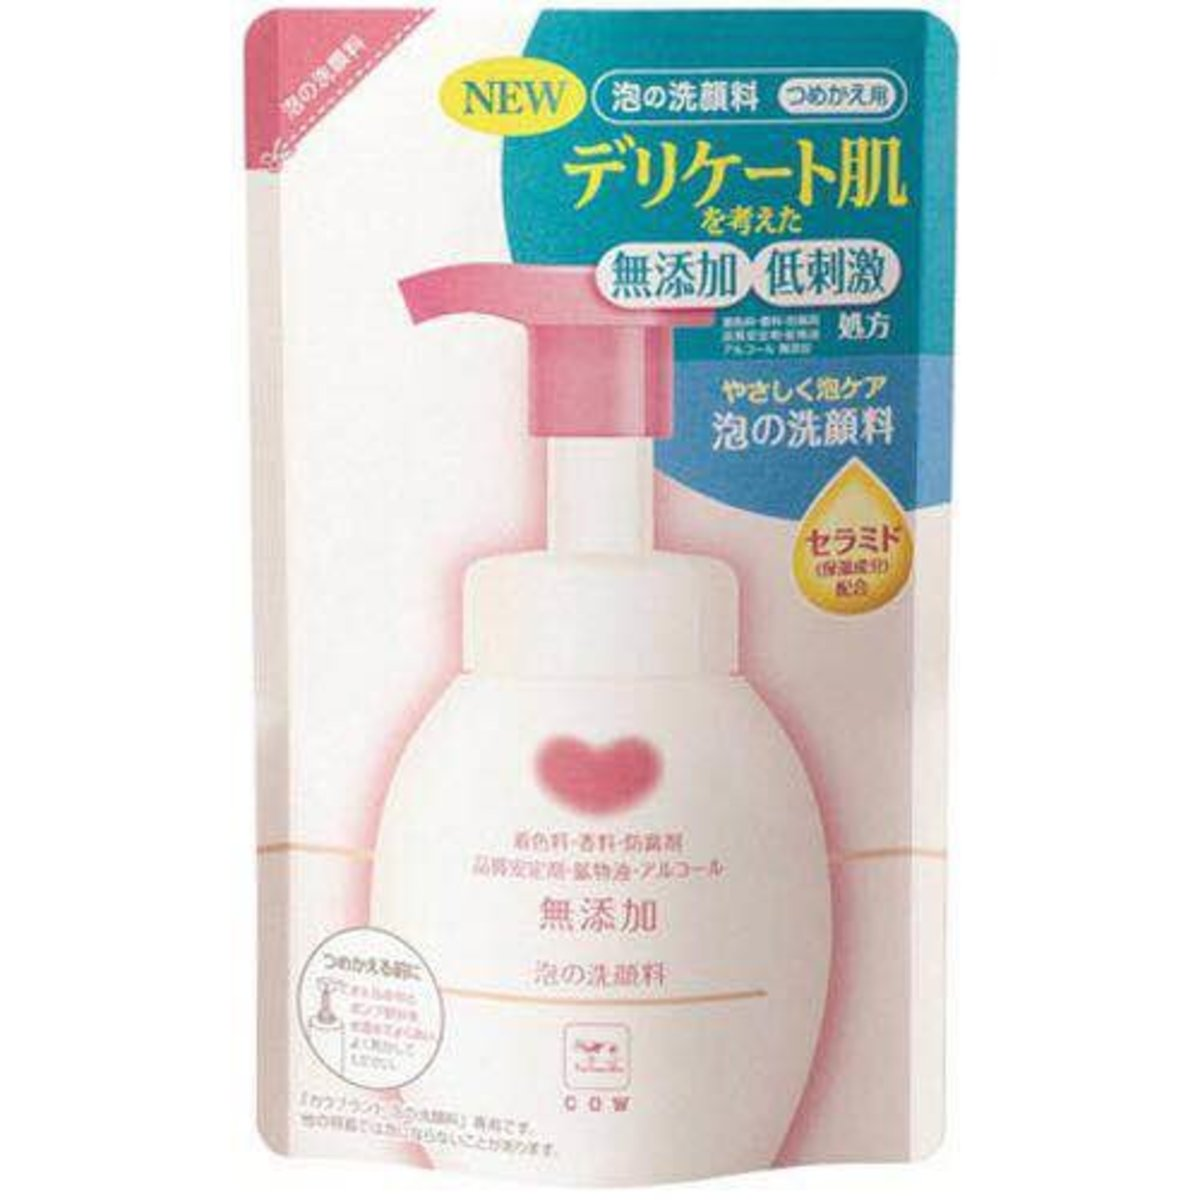 Face Cleansing Foam (for delicate skin) Refill 180ml (Parallel Import)